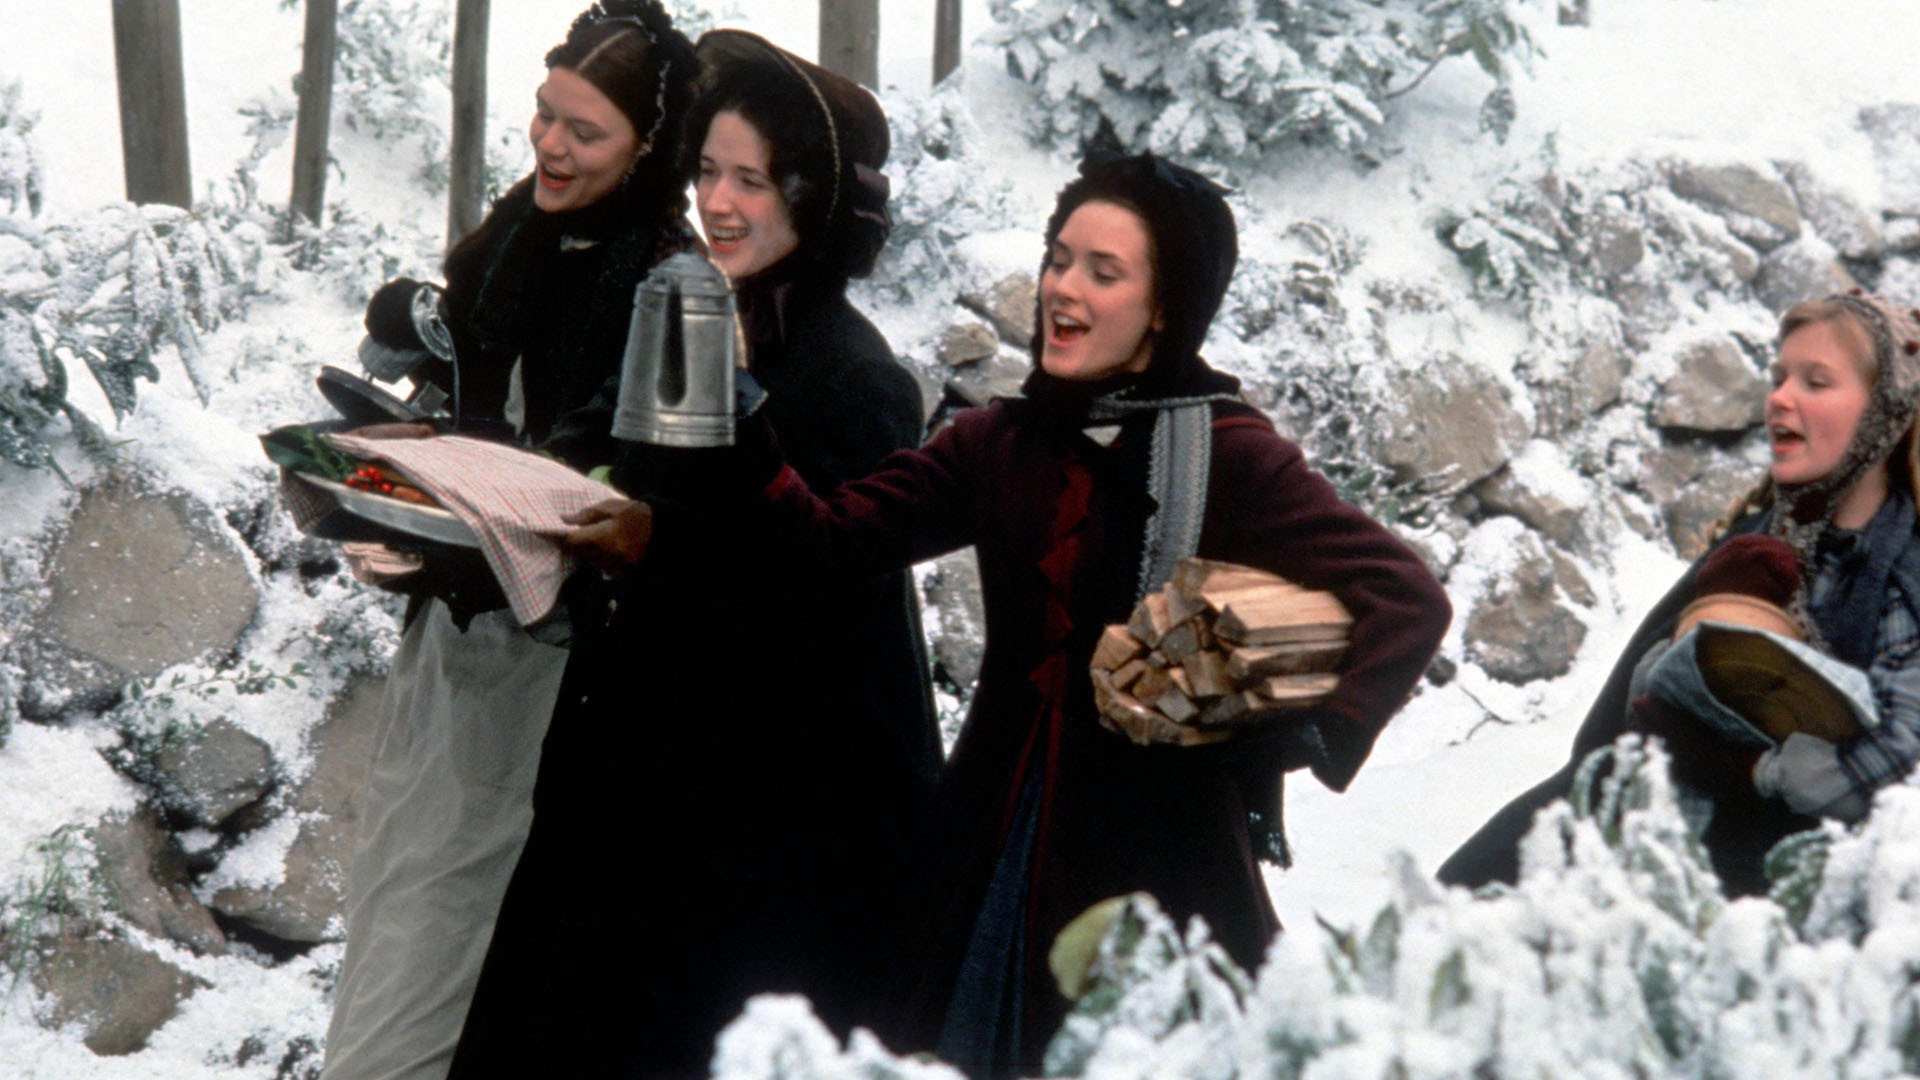 Little Women Movie at Christmas